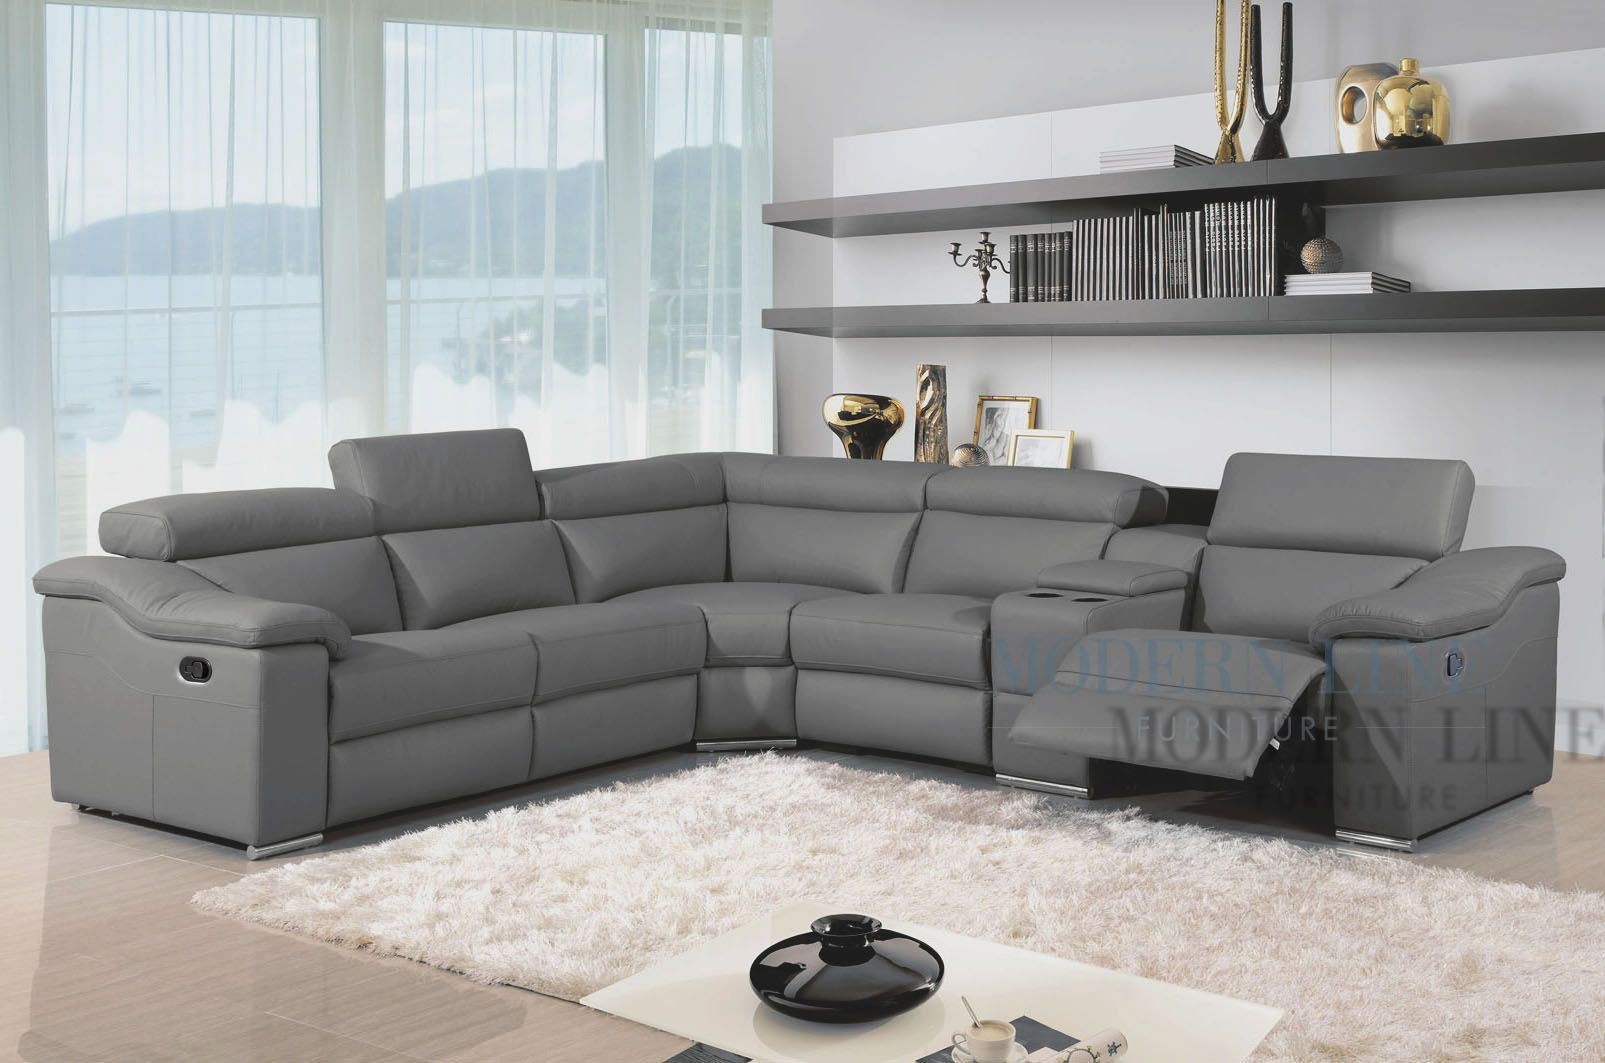 Awesome Great Charcoal Grey Sectional Sofa About Remodel Home - Gray leather sectional sofas